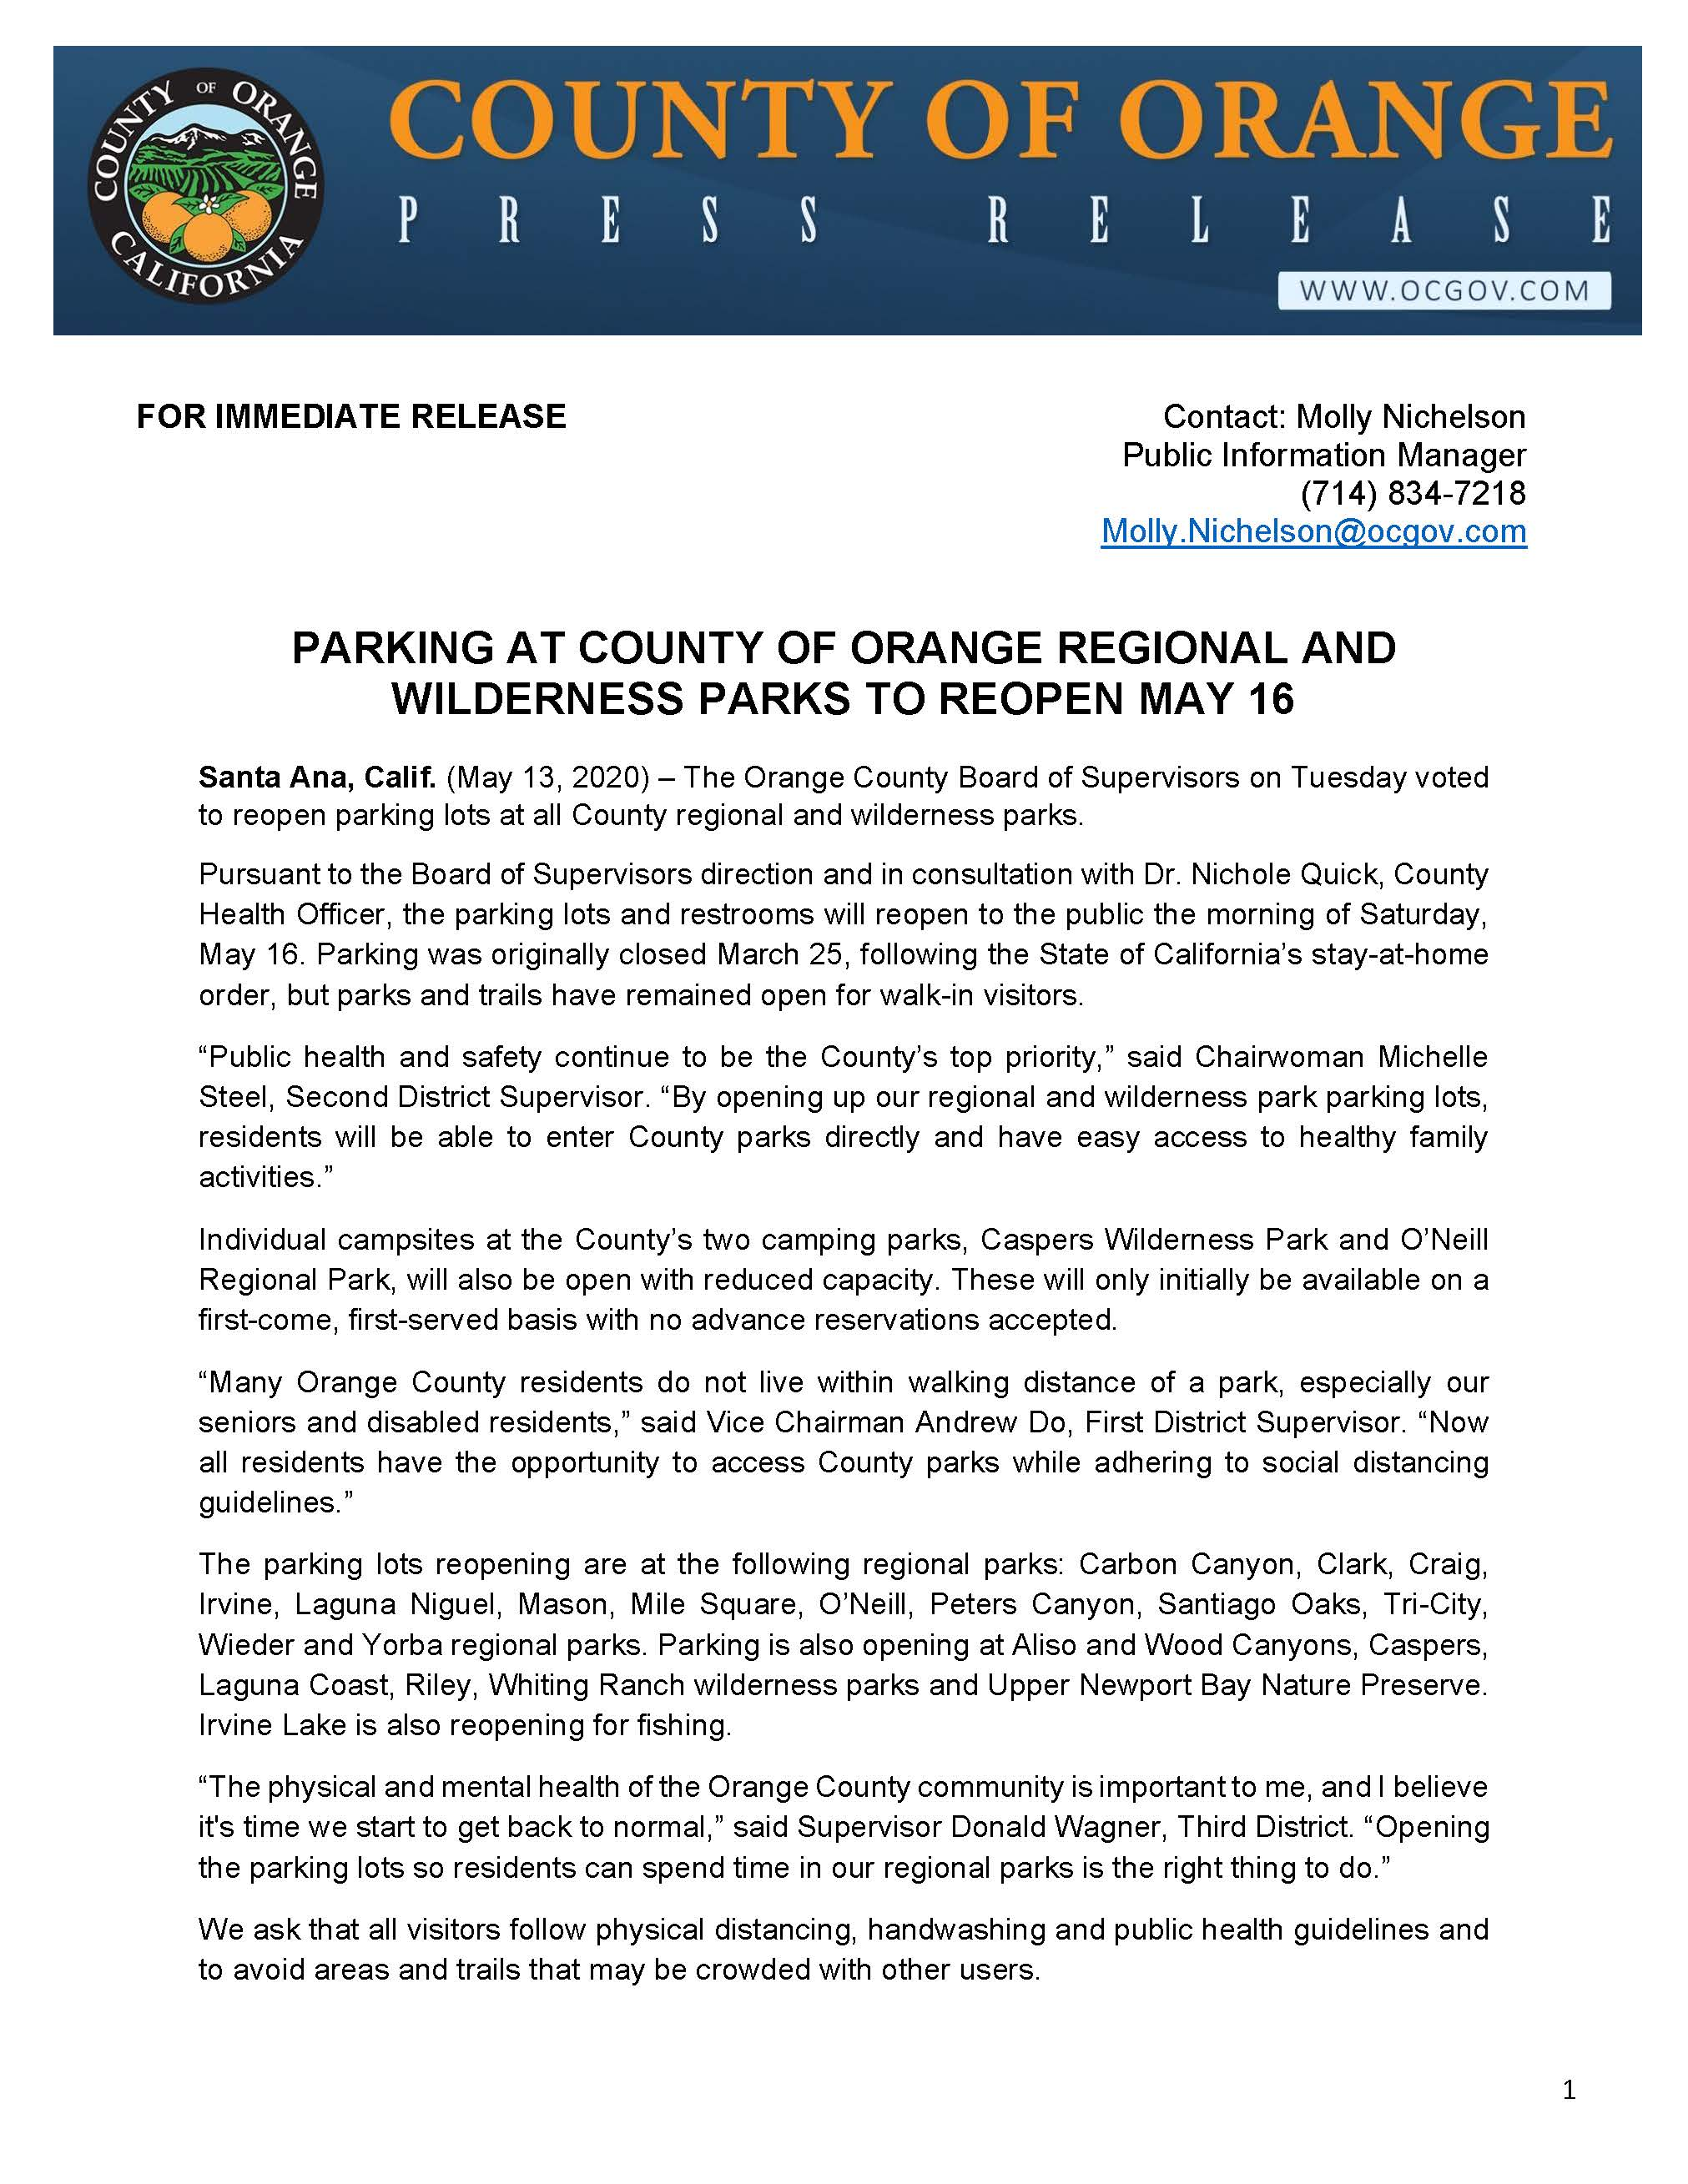 PRESS RELEASE_Parking at County Of Orange Regional and Wilderness Parks to Reopen May 16_Page_1